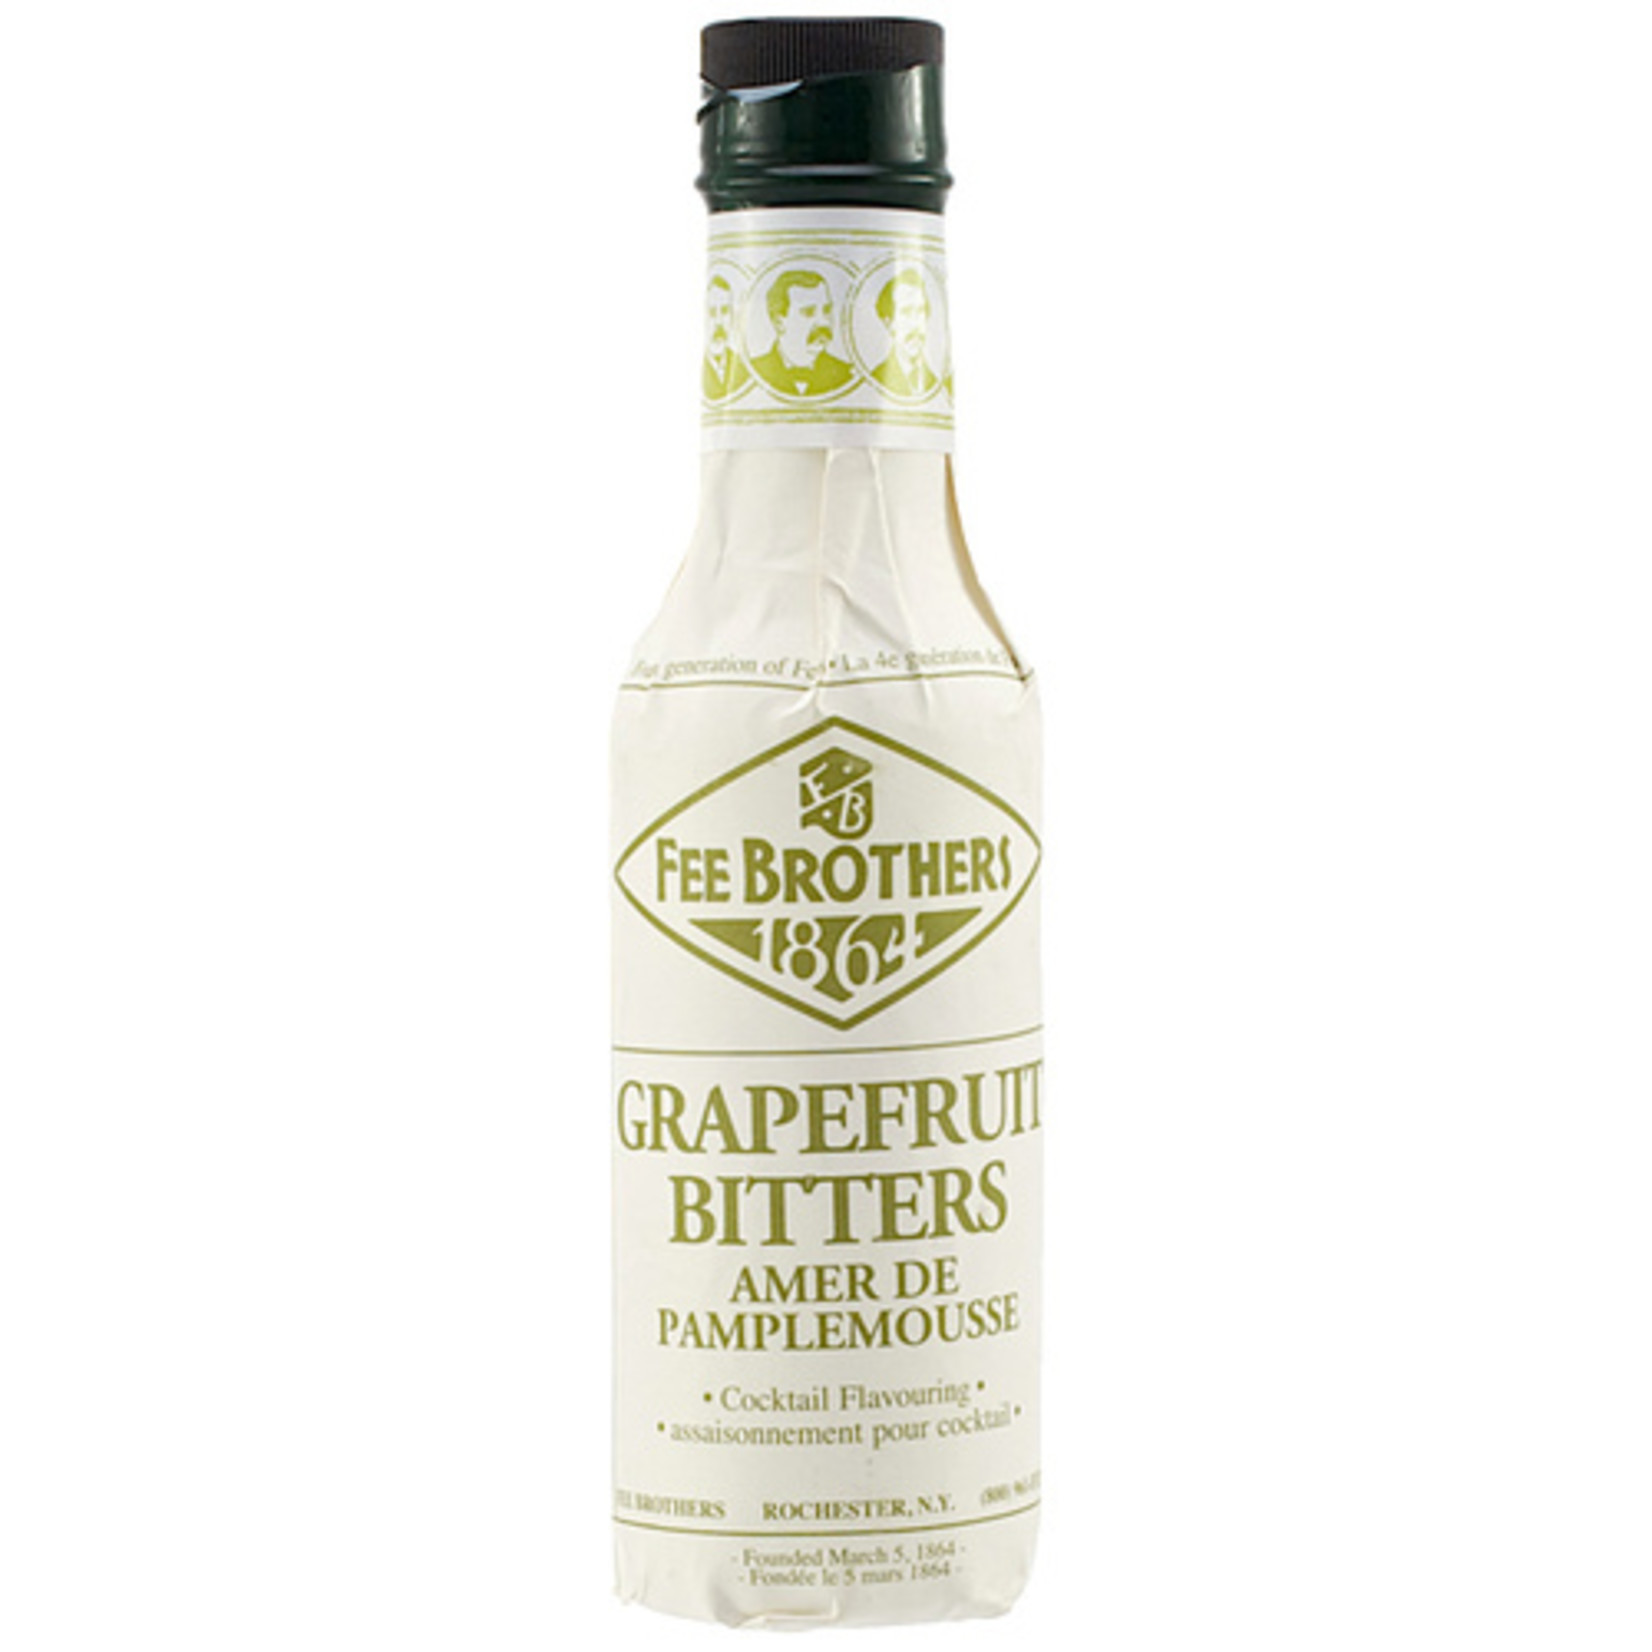 Fee Brothers Fee Brothers Bitters Grapefruit